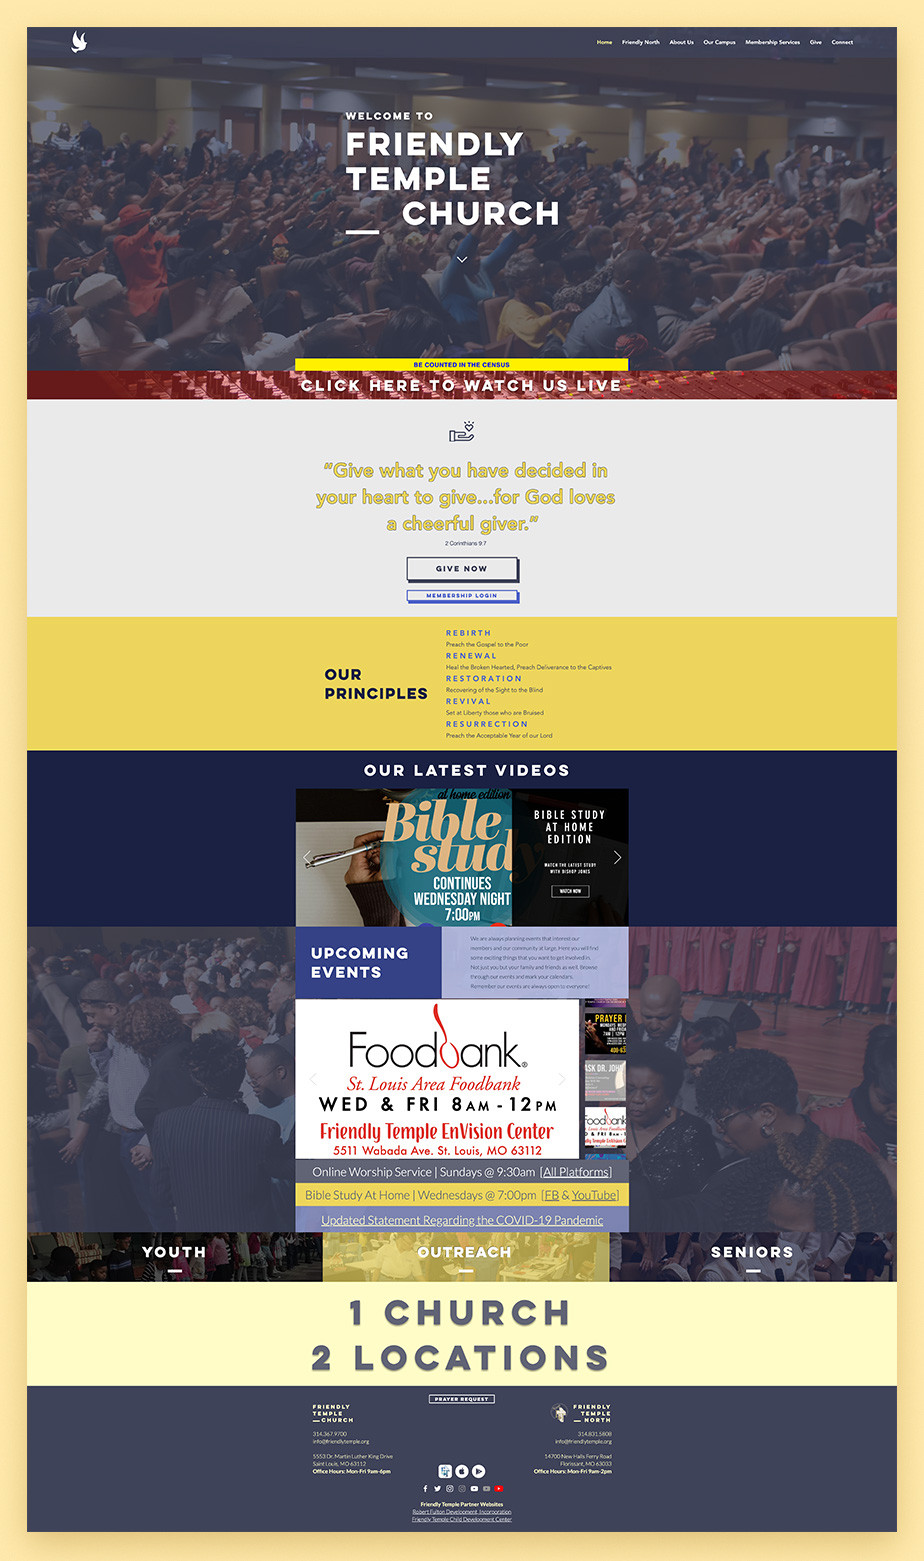 Best church websites example by Friendly Temple Church